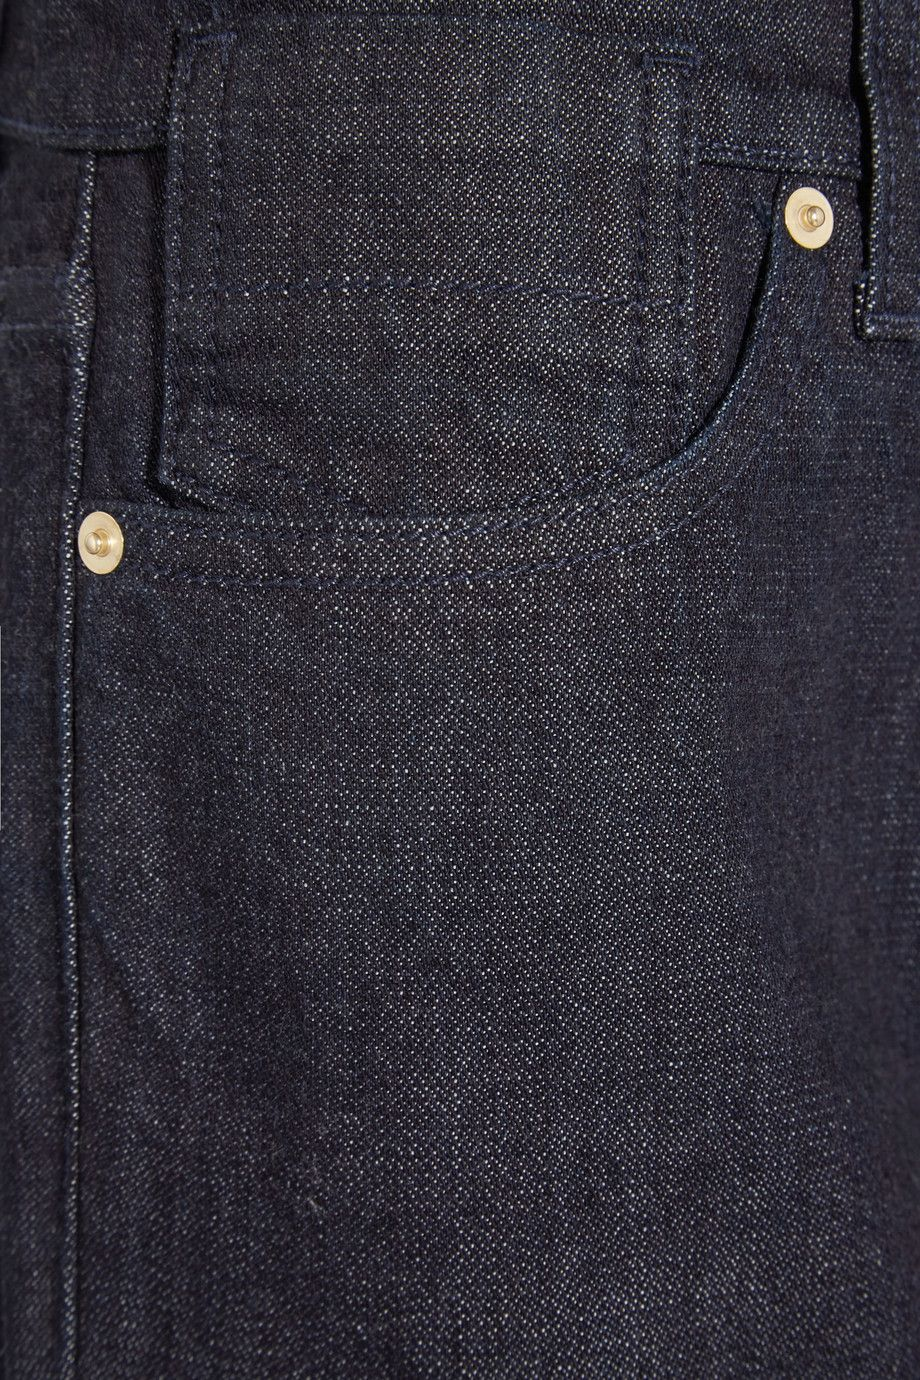 MidnightBlue Denim Button And Concealed Zip Fastening At Front